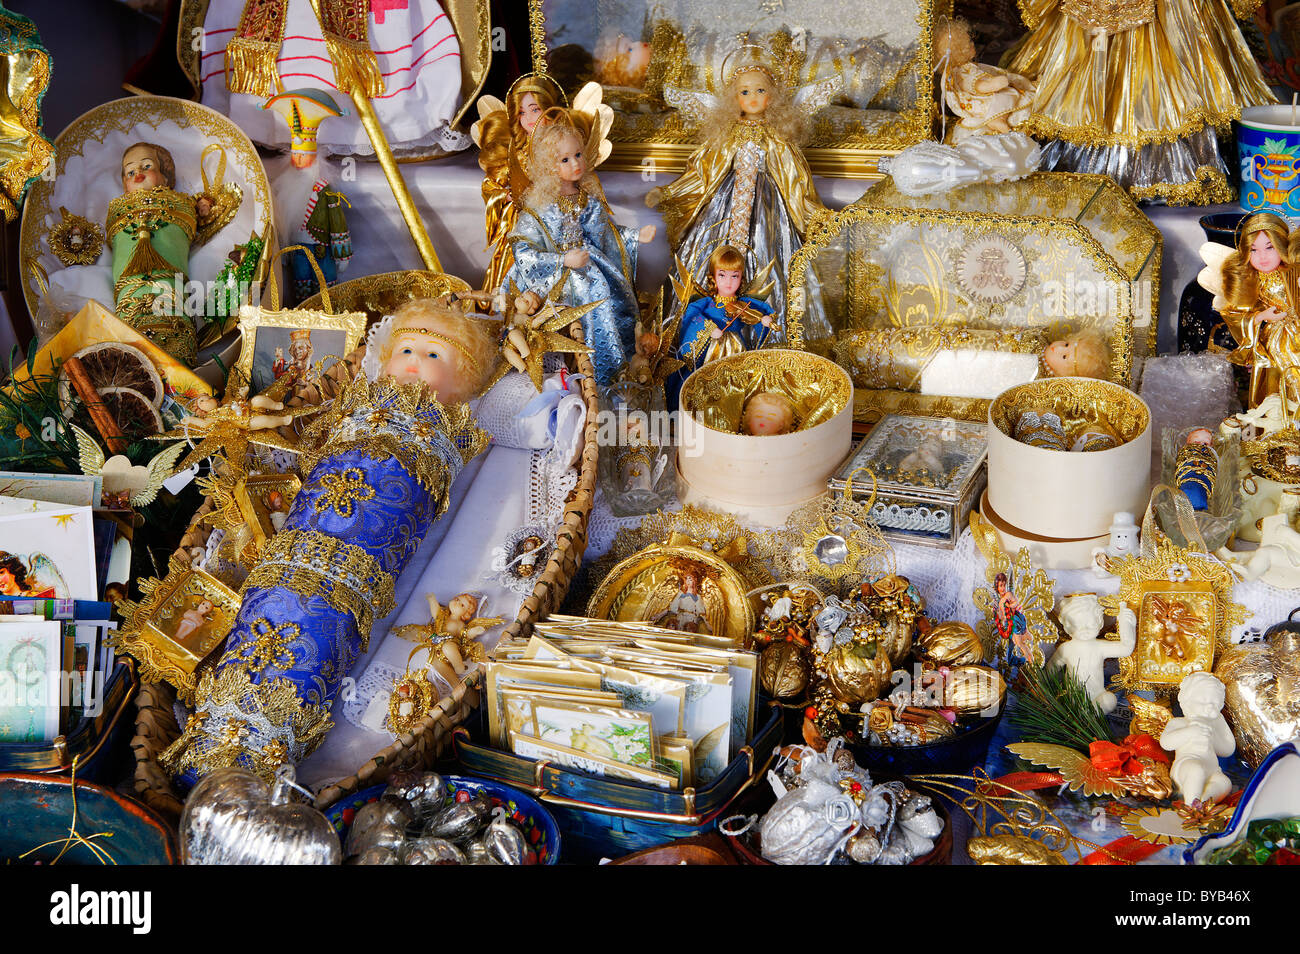 Artisanat religieux par U Muster, Garching, marché de noël, Kapellplatz, Altoetting, Upper Bavaria, Germany, Photo Stock